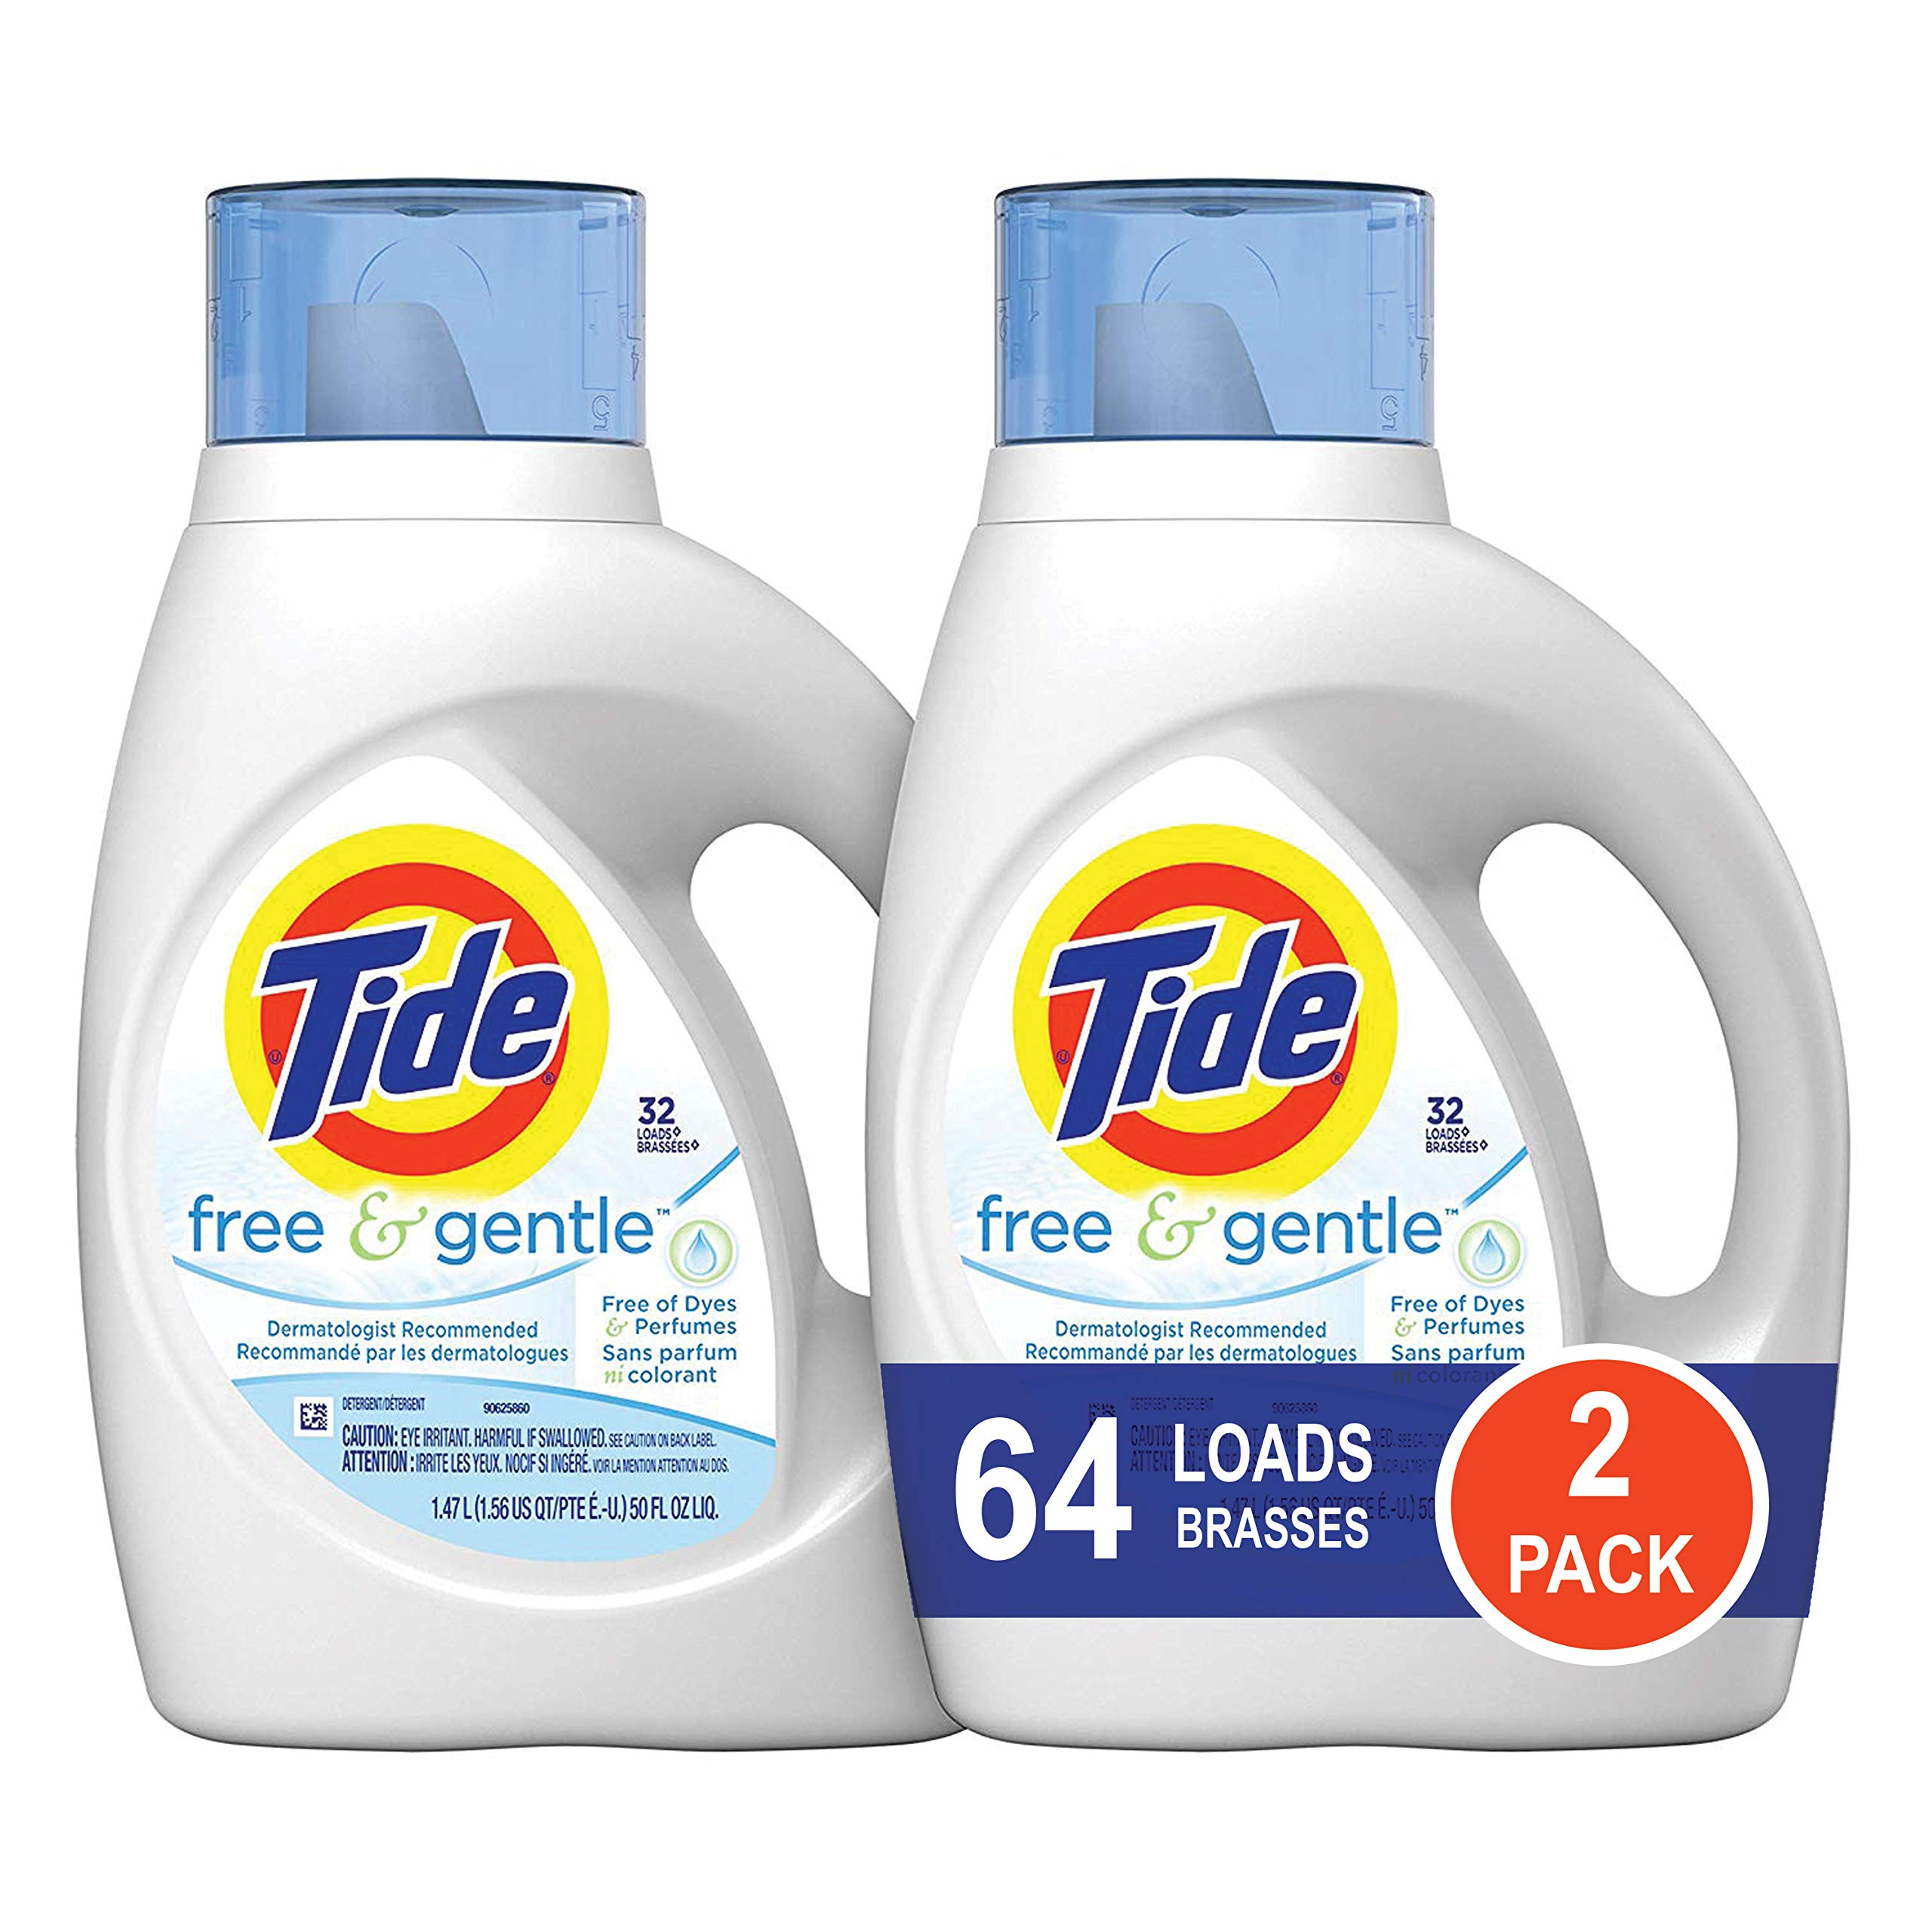 Tide Free and Gentle HE Liquid Laundry Detergent, 2 Pack of 50 oz., Unscented and Hypoallergenic for Sensitive Skin, 64 Loads by Tide